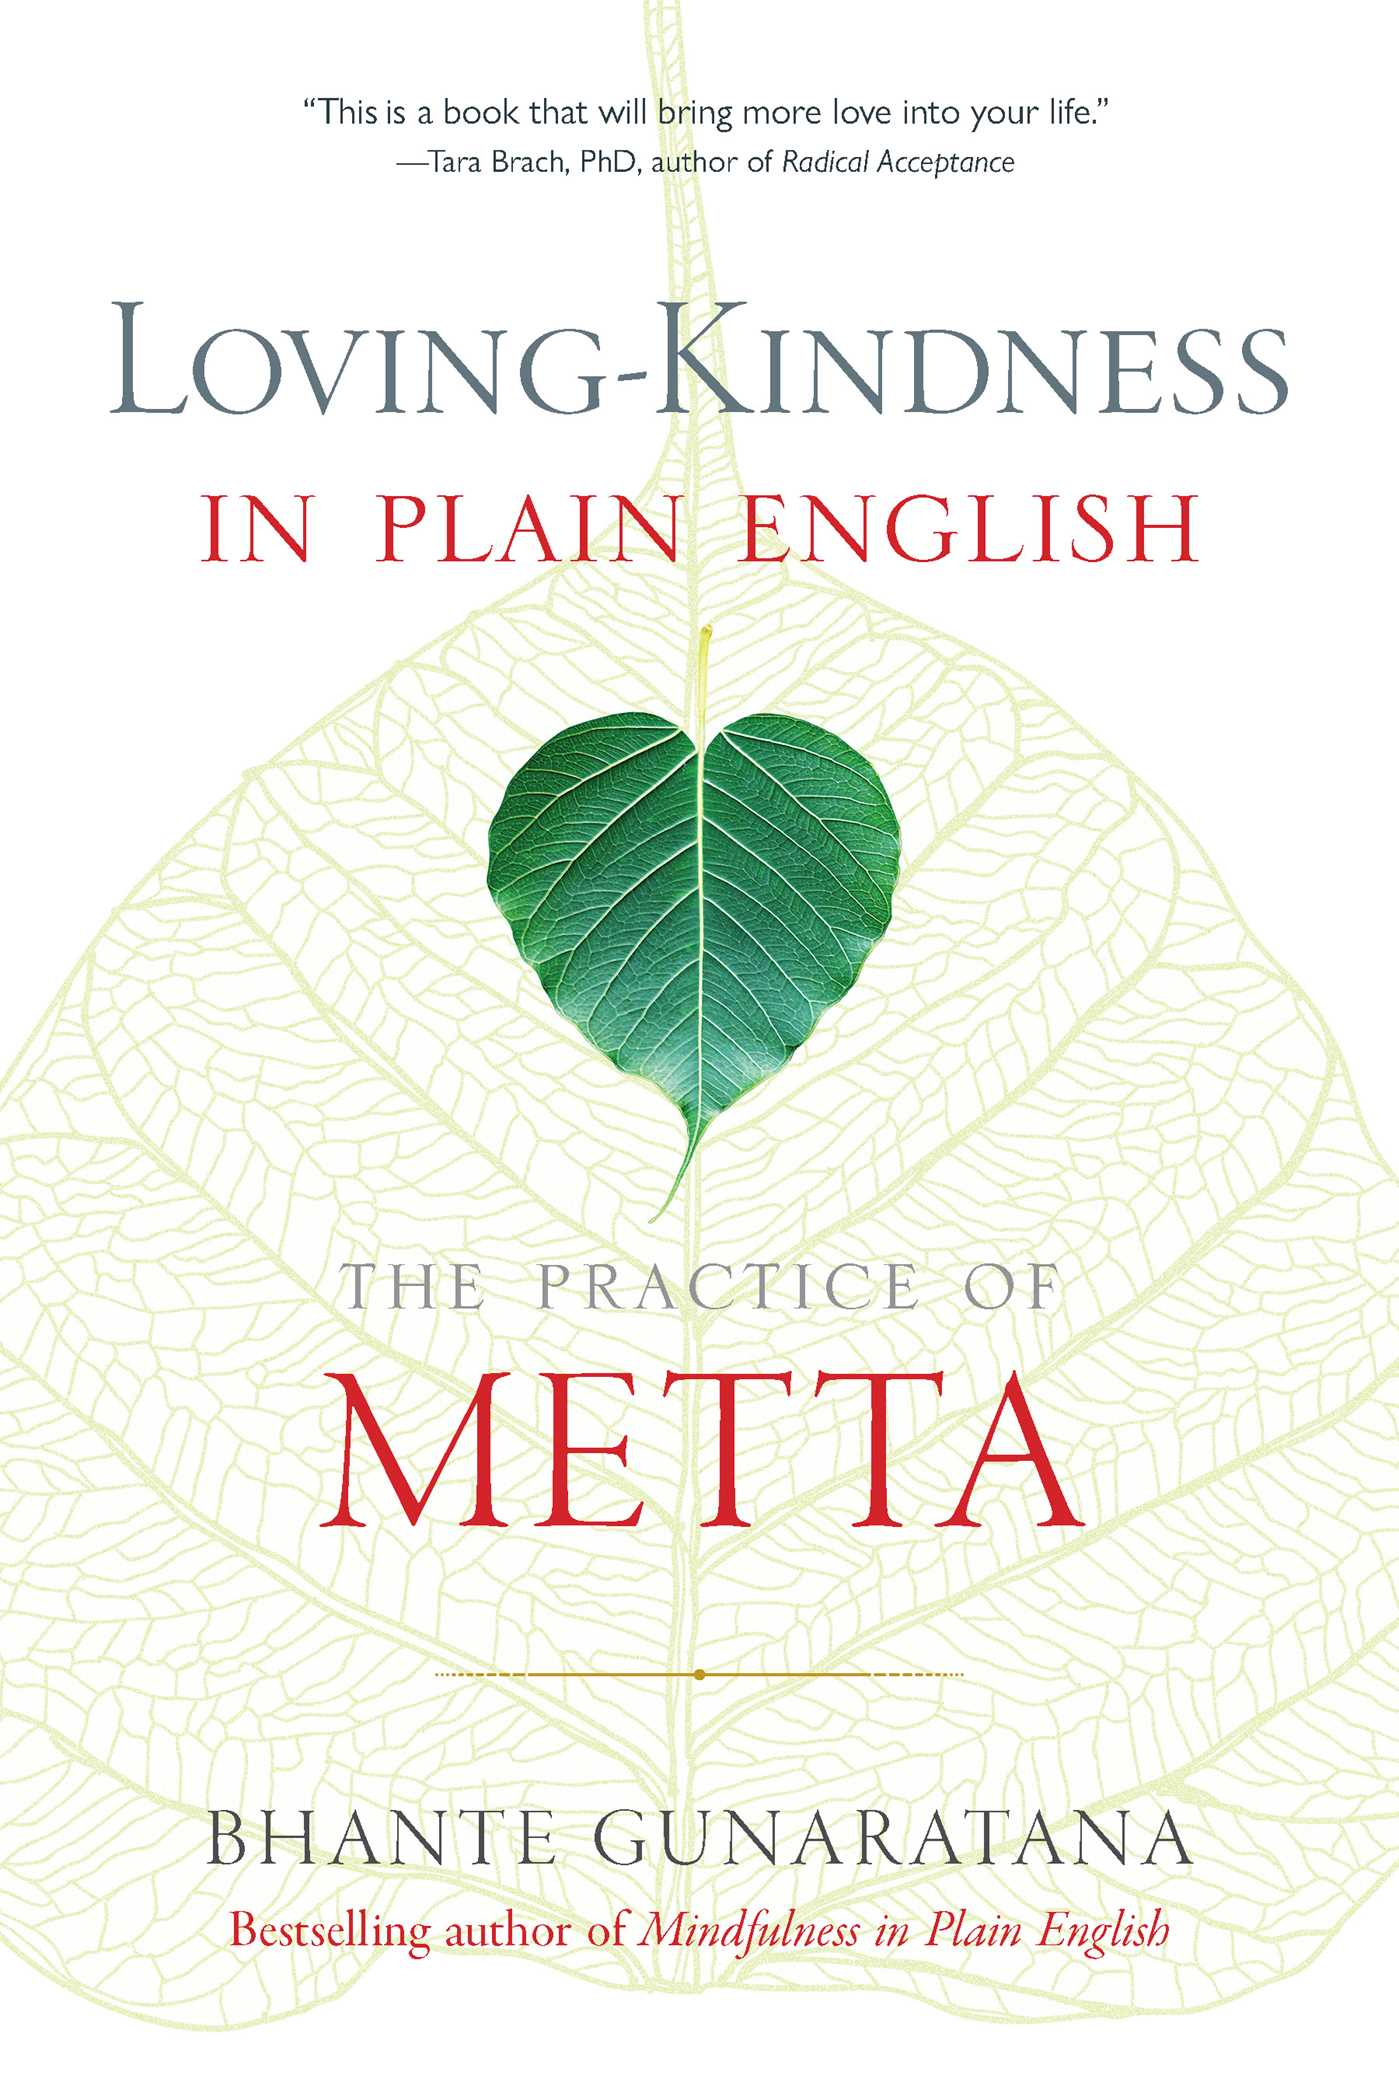 Loving kindness in plain english 9781614292494 hr